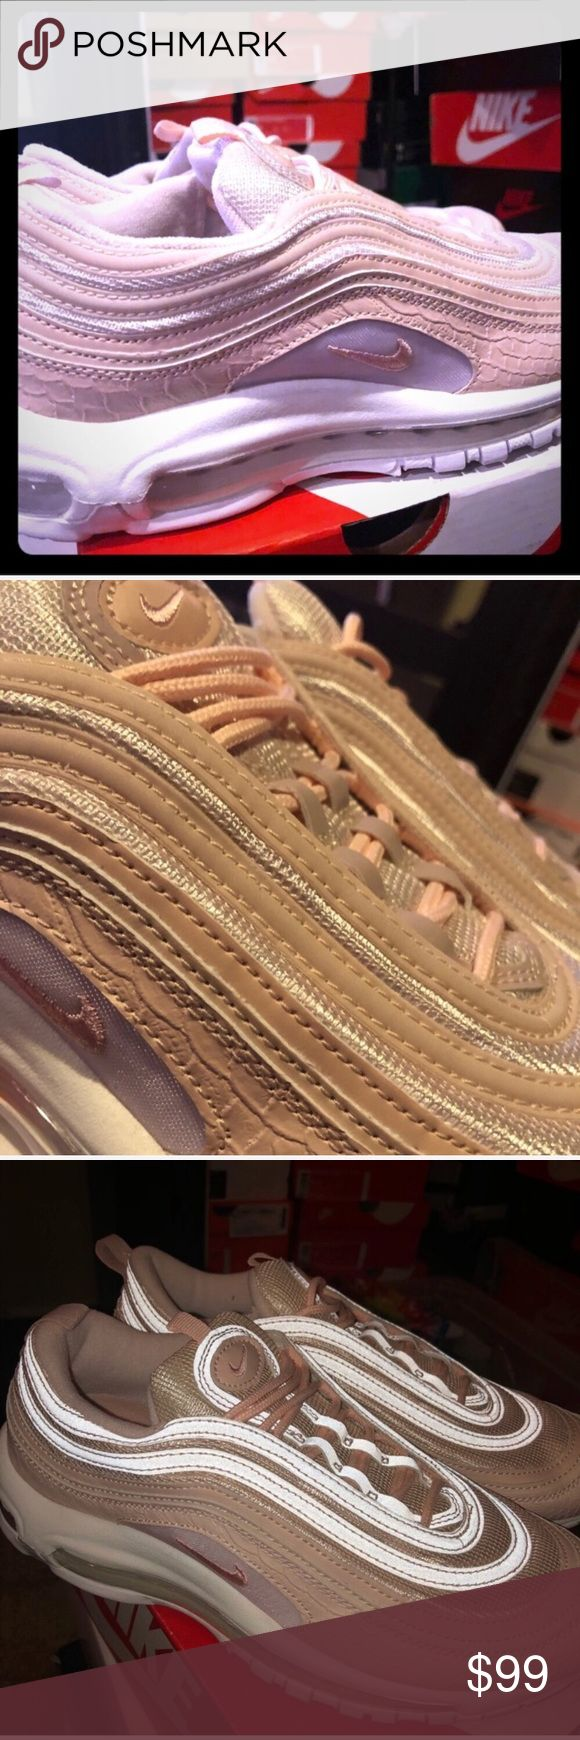 Nike air max 97 Pink Snakeskin, 8.5, NWRB!!! Nike Air Max 97 Pink Snakeskins, 8.5. Personal situation have left me with Just the Shoesl. Shoes will be shipped in a similar Nike replacement box. NEVER WORN OUTSIDE, worn twice inside on carpet. Price is firm and a great deal!! Nike Shoes Athletic Shoes